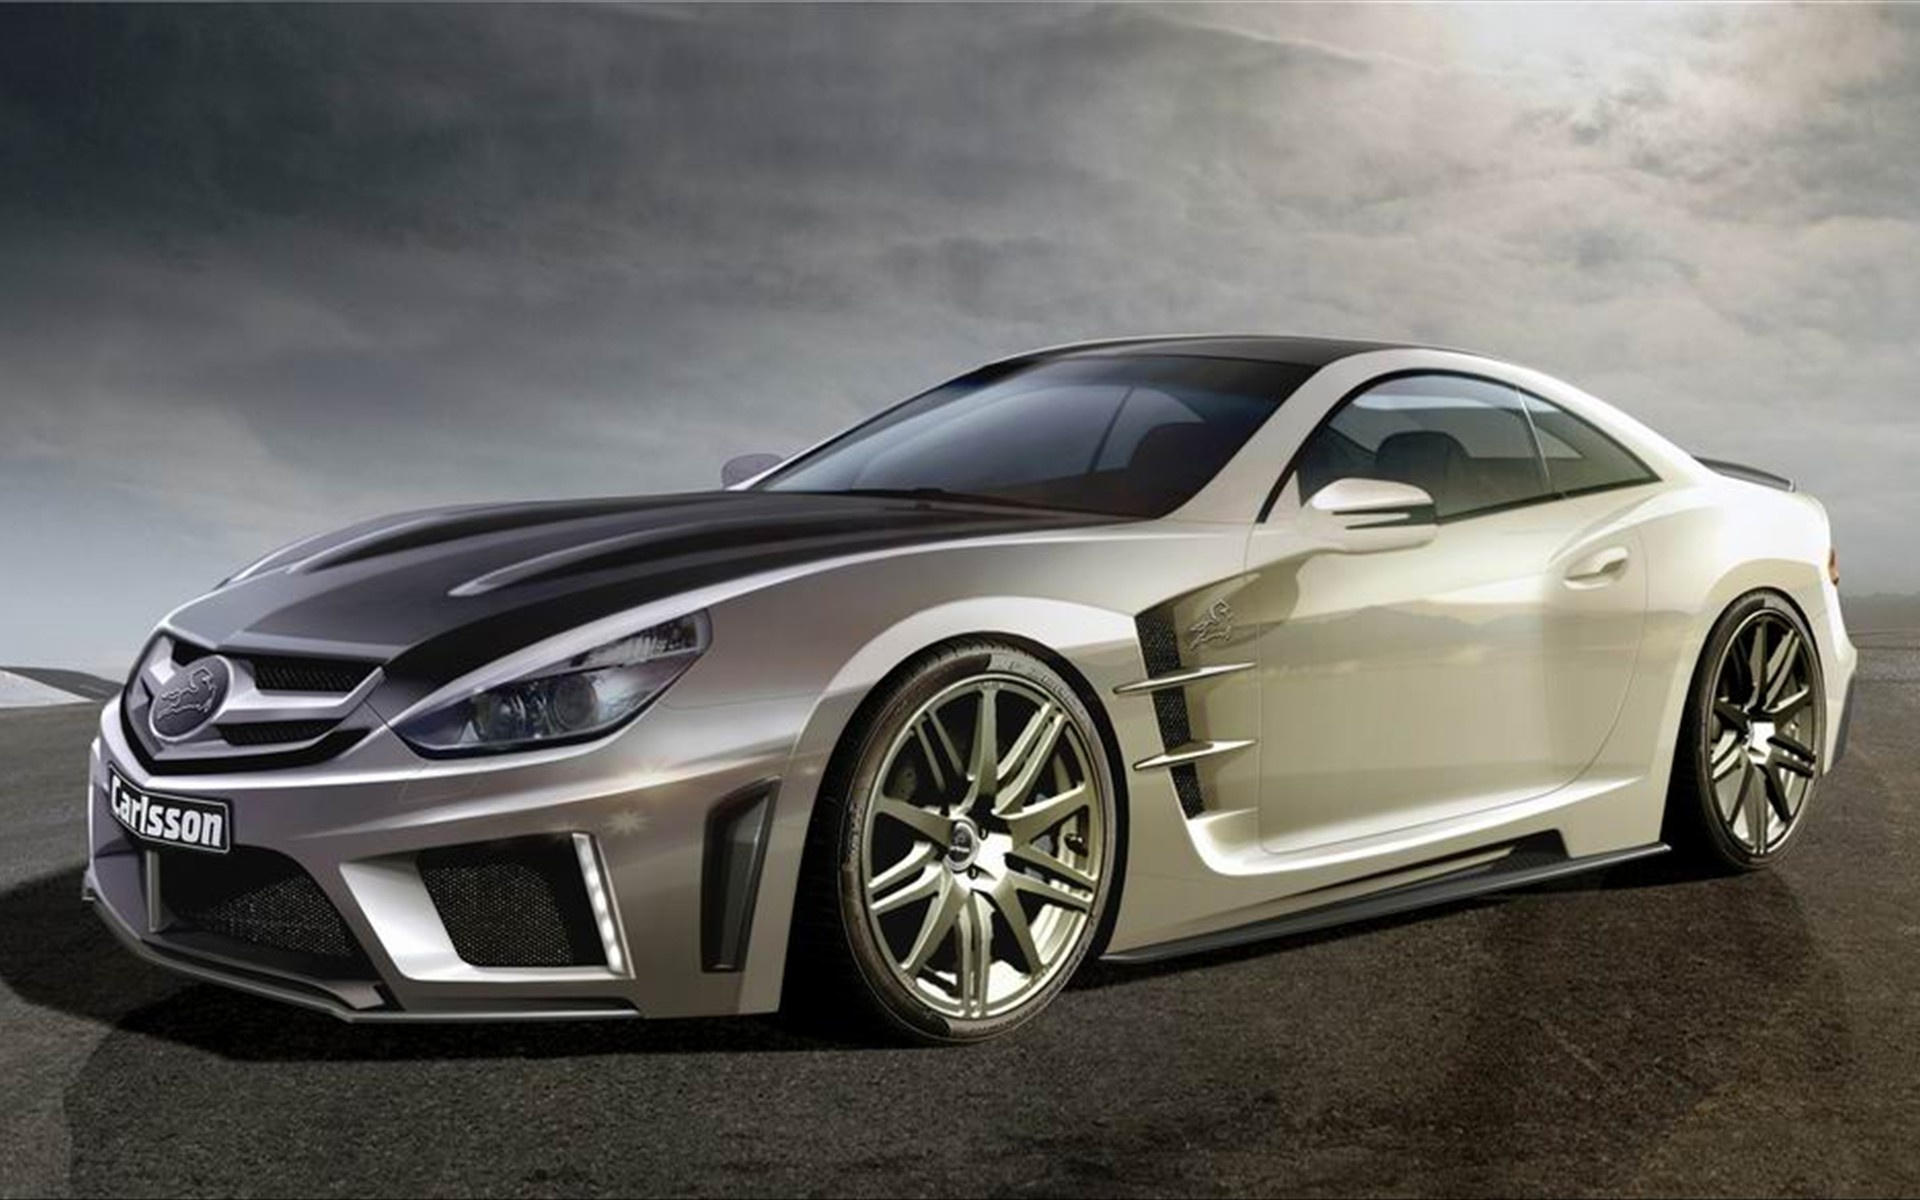 Wallpaper download car - Carlsson C25 Super Car